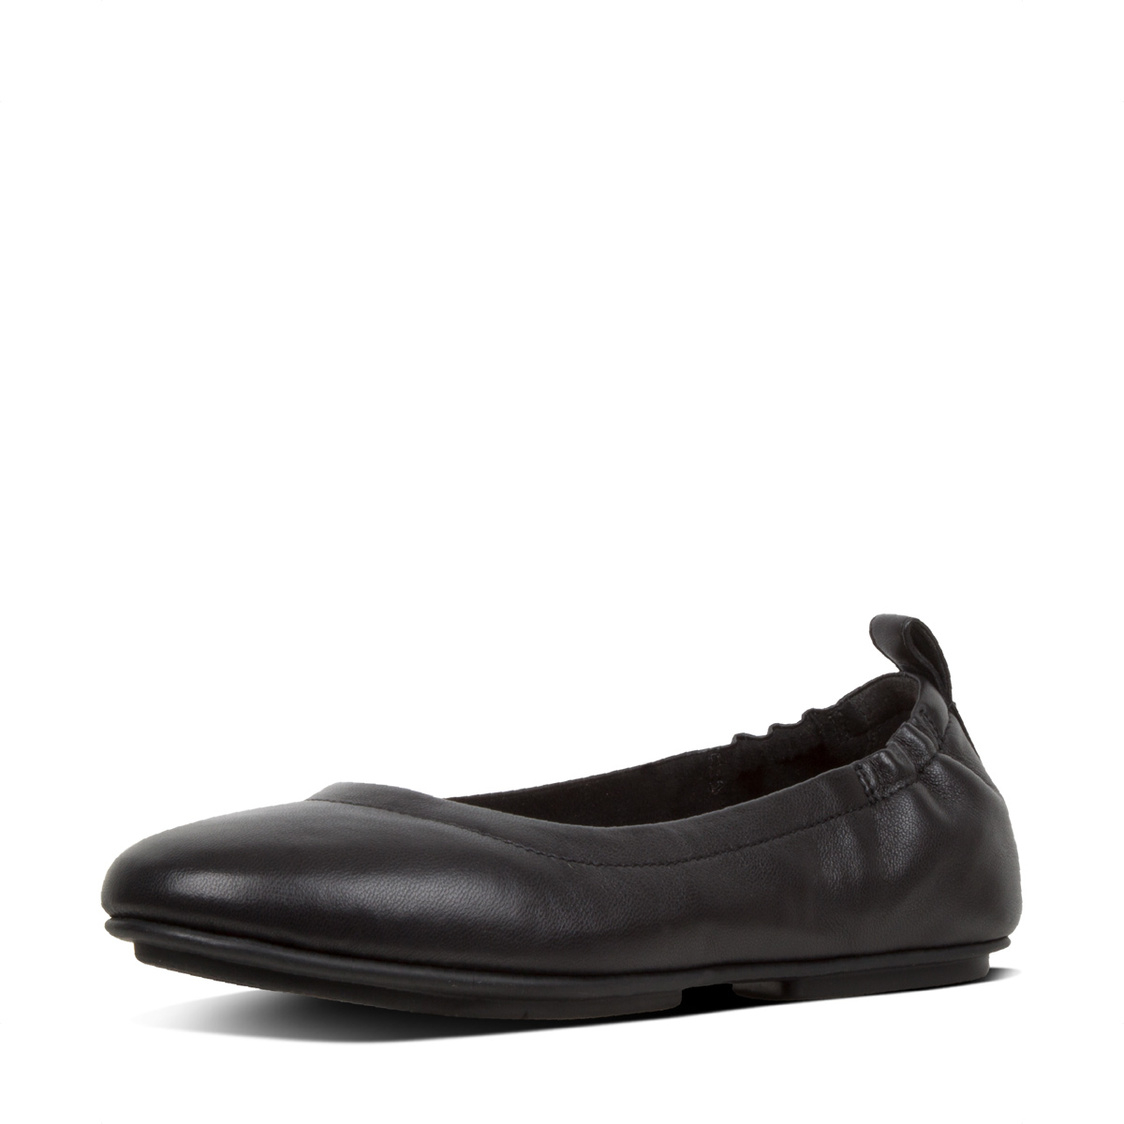 Allegro Leather Ballerinas Black